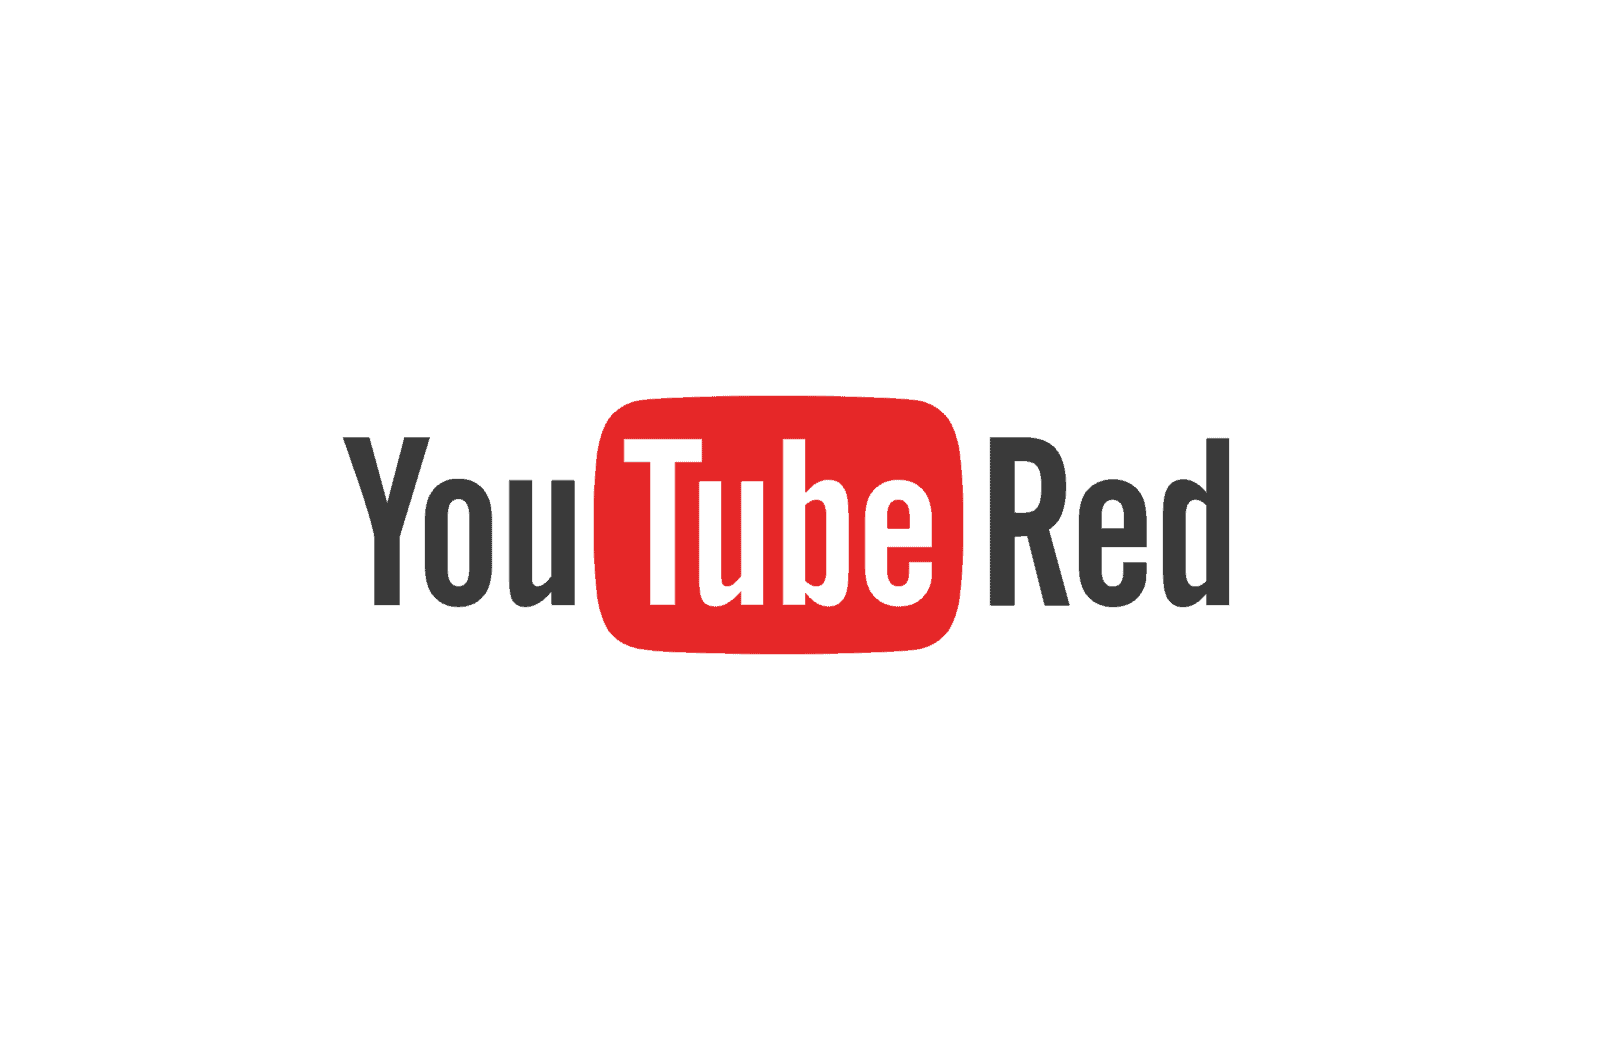 youtube-red-AH-1